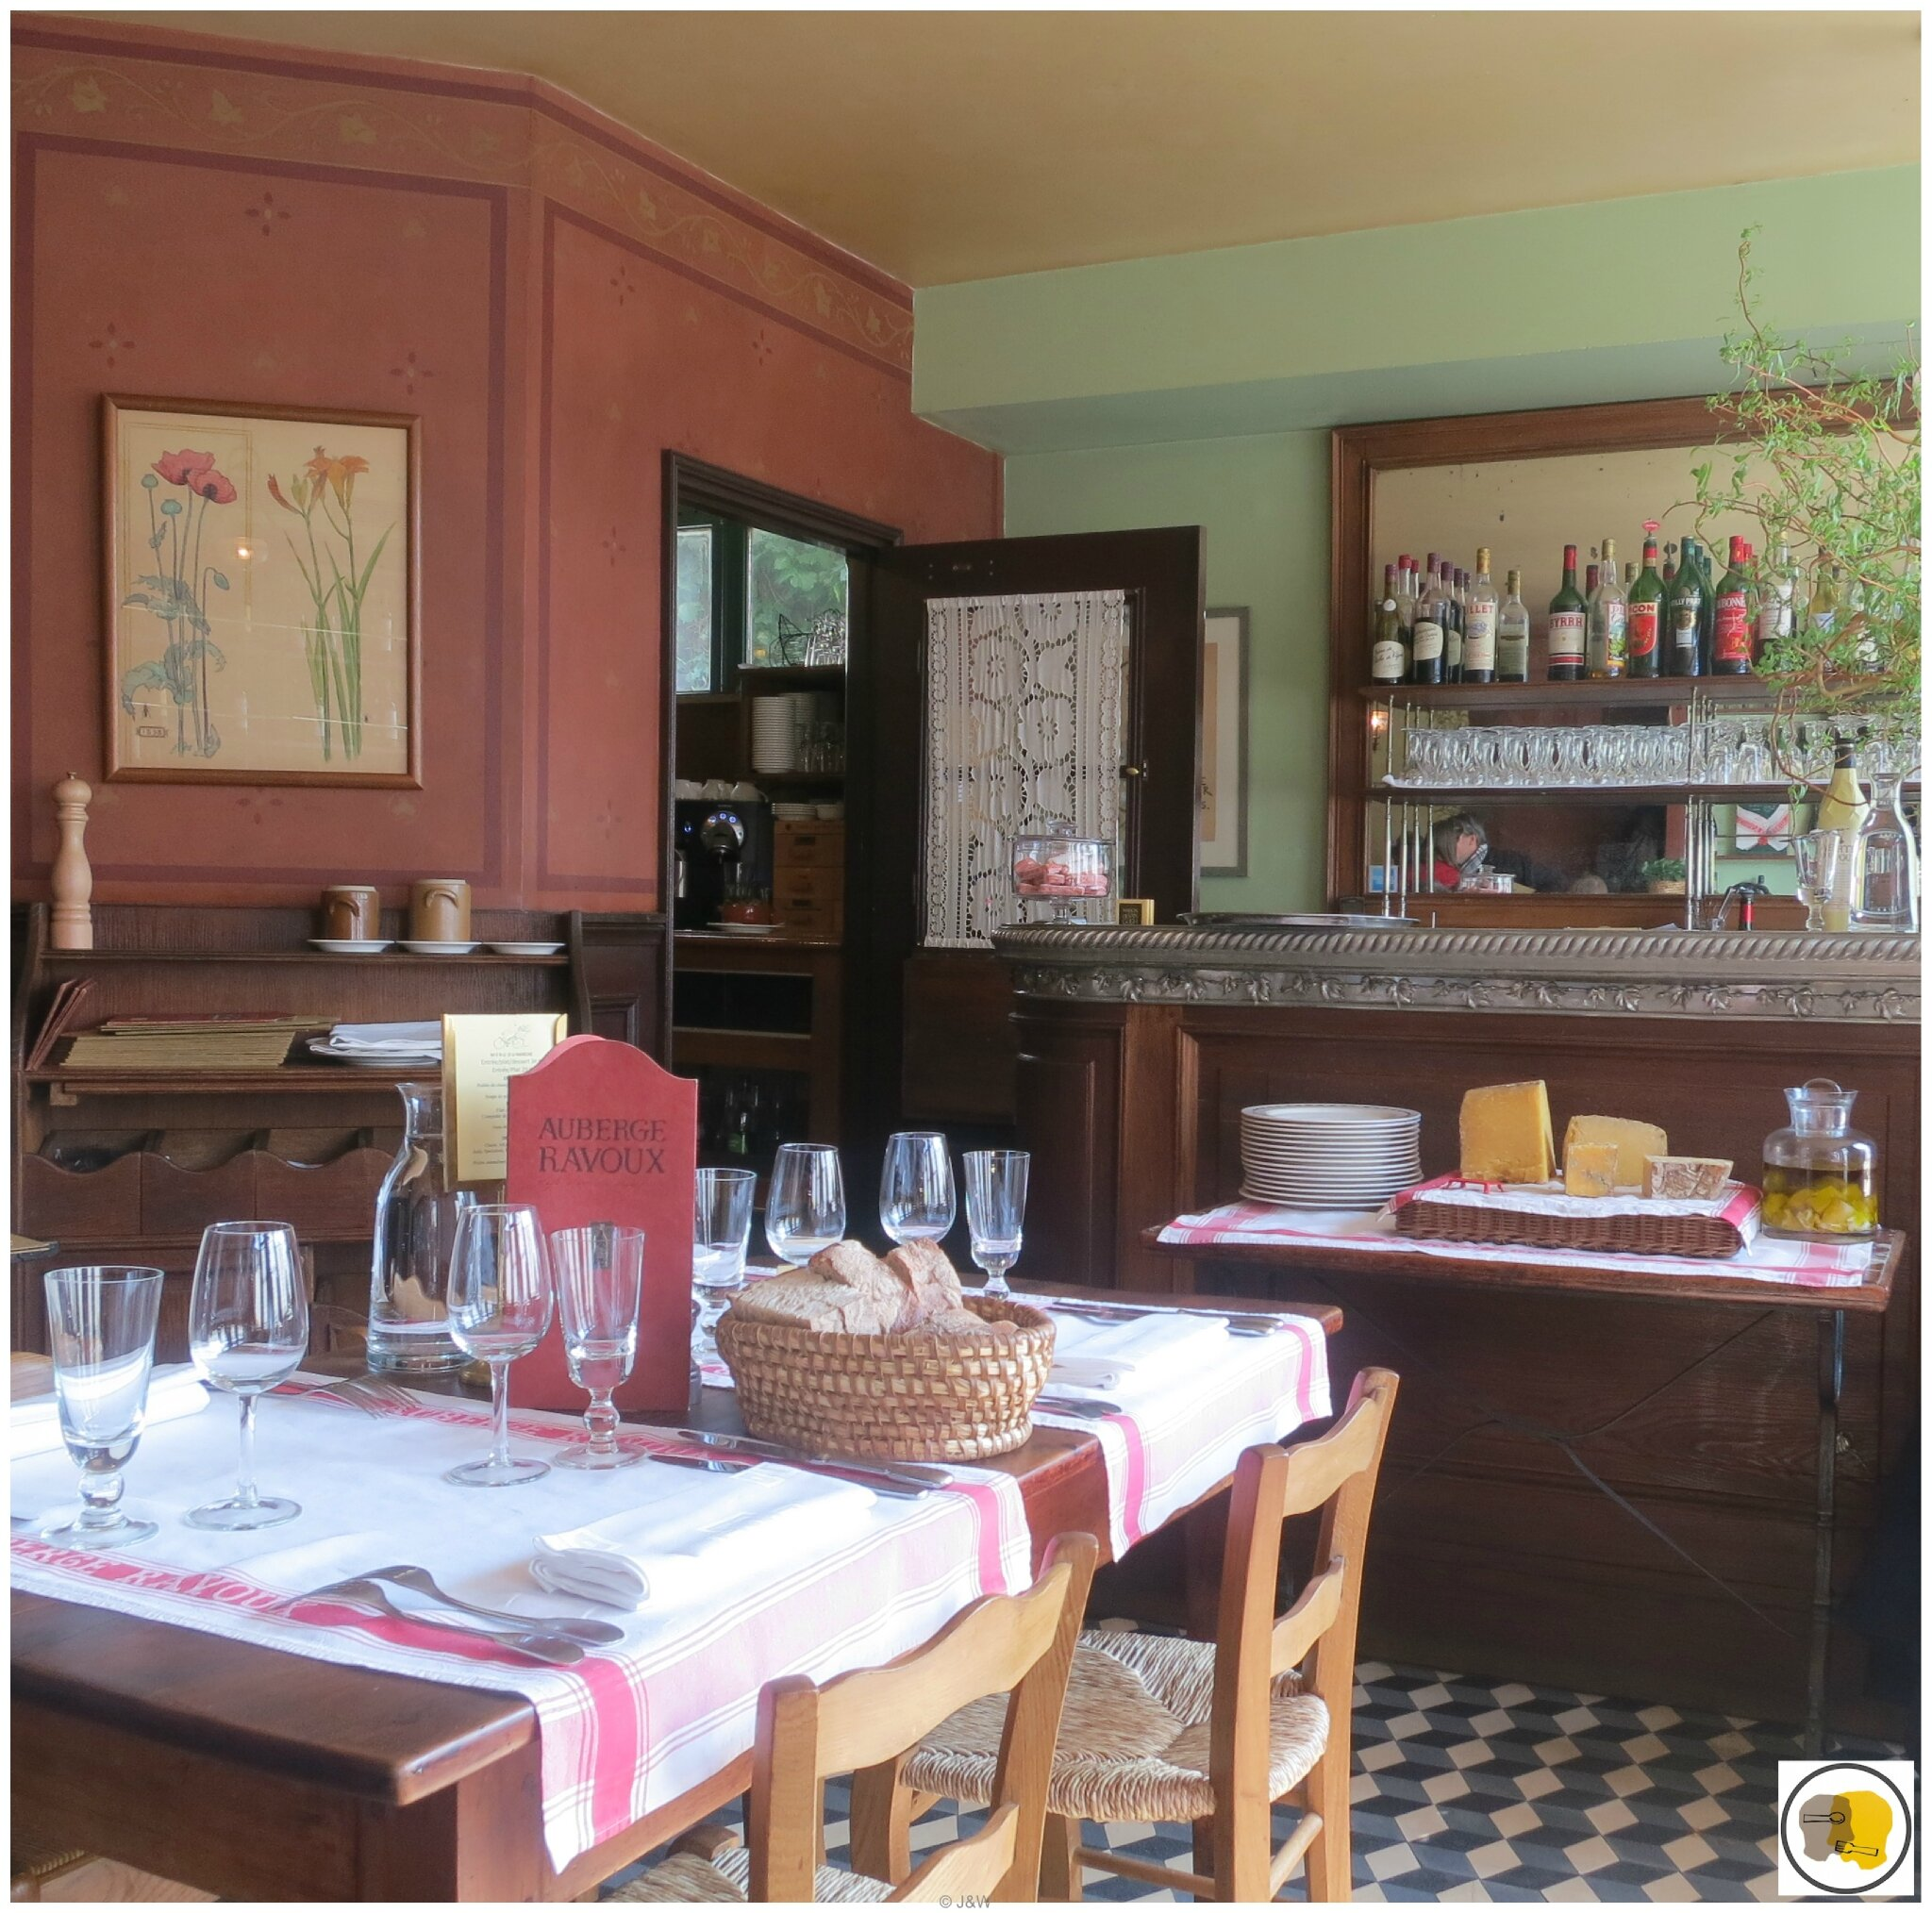 photo restaurant auvers sur oise auberge ravoux